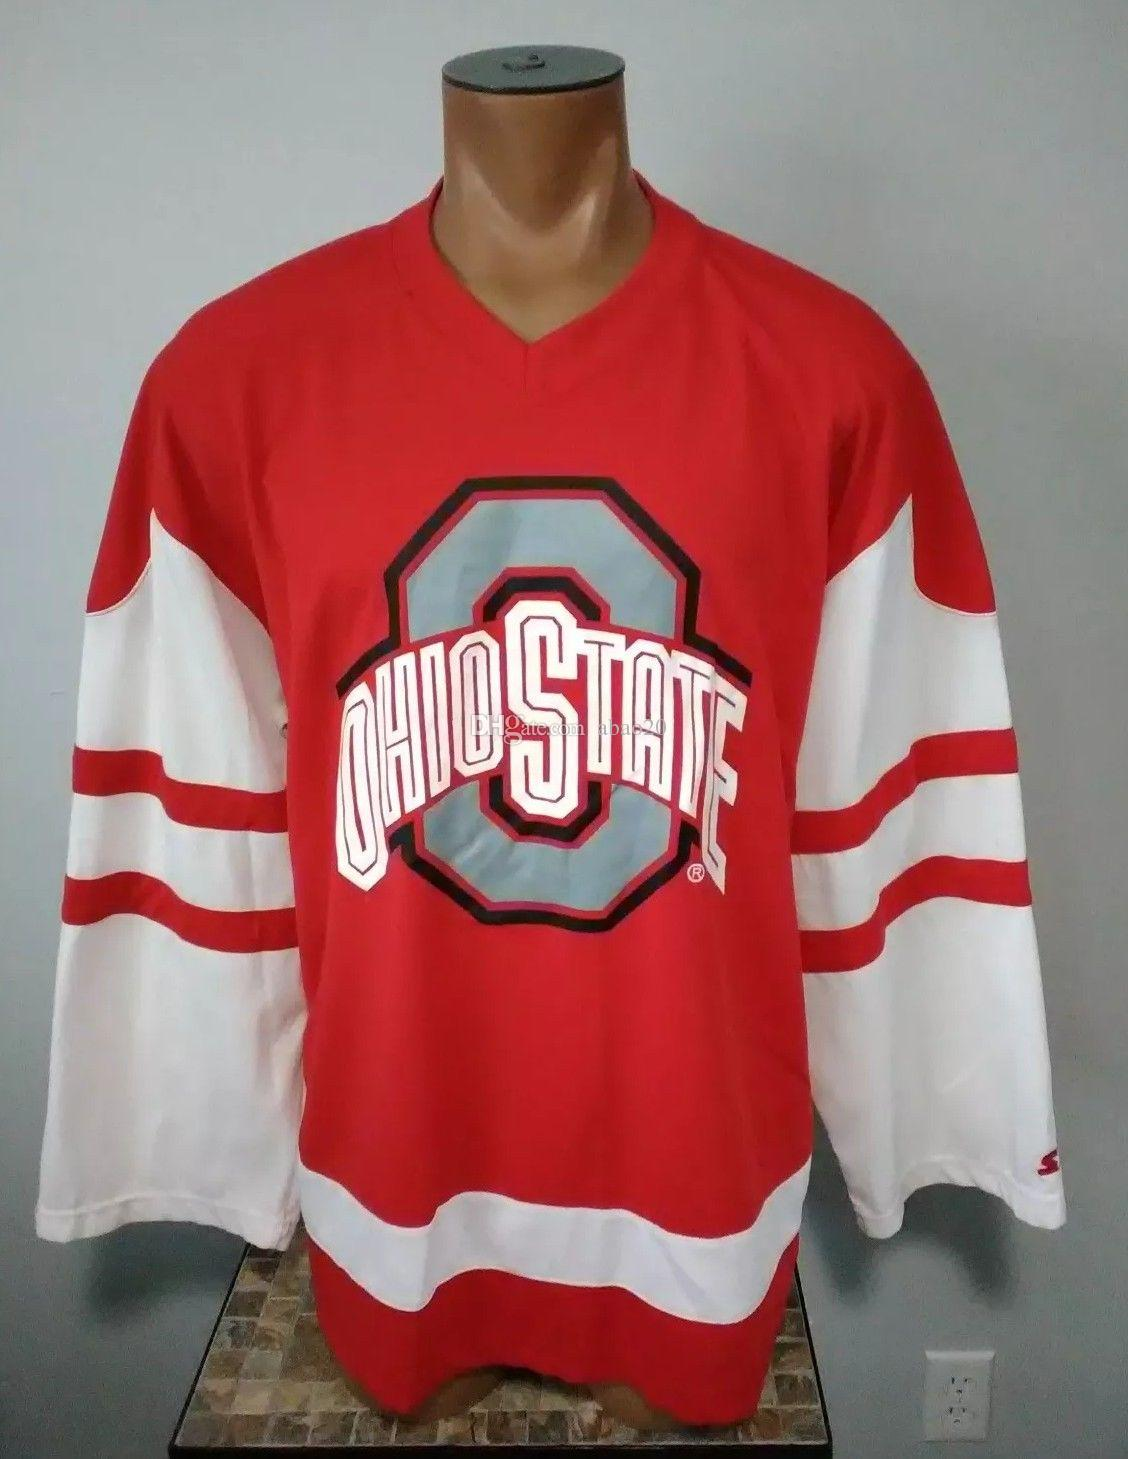 b71806e4641 2019 Ohio State Buckeyes Vintage Ice Hockey Jersey Mens Stitched Custom Any  Number And Name Jerseys From Abao20, $40.6 | DHgate.Com